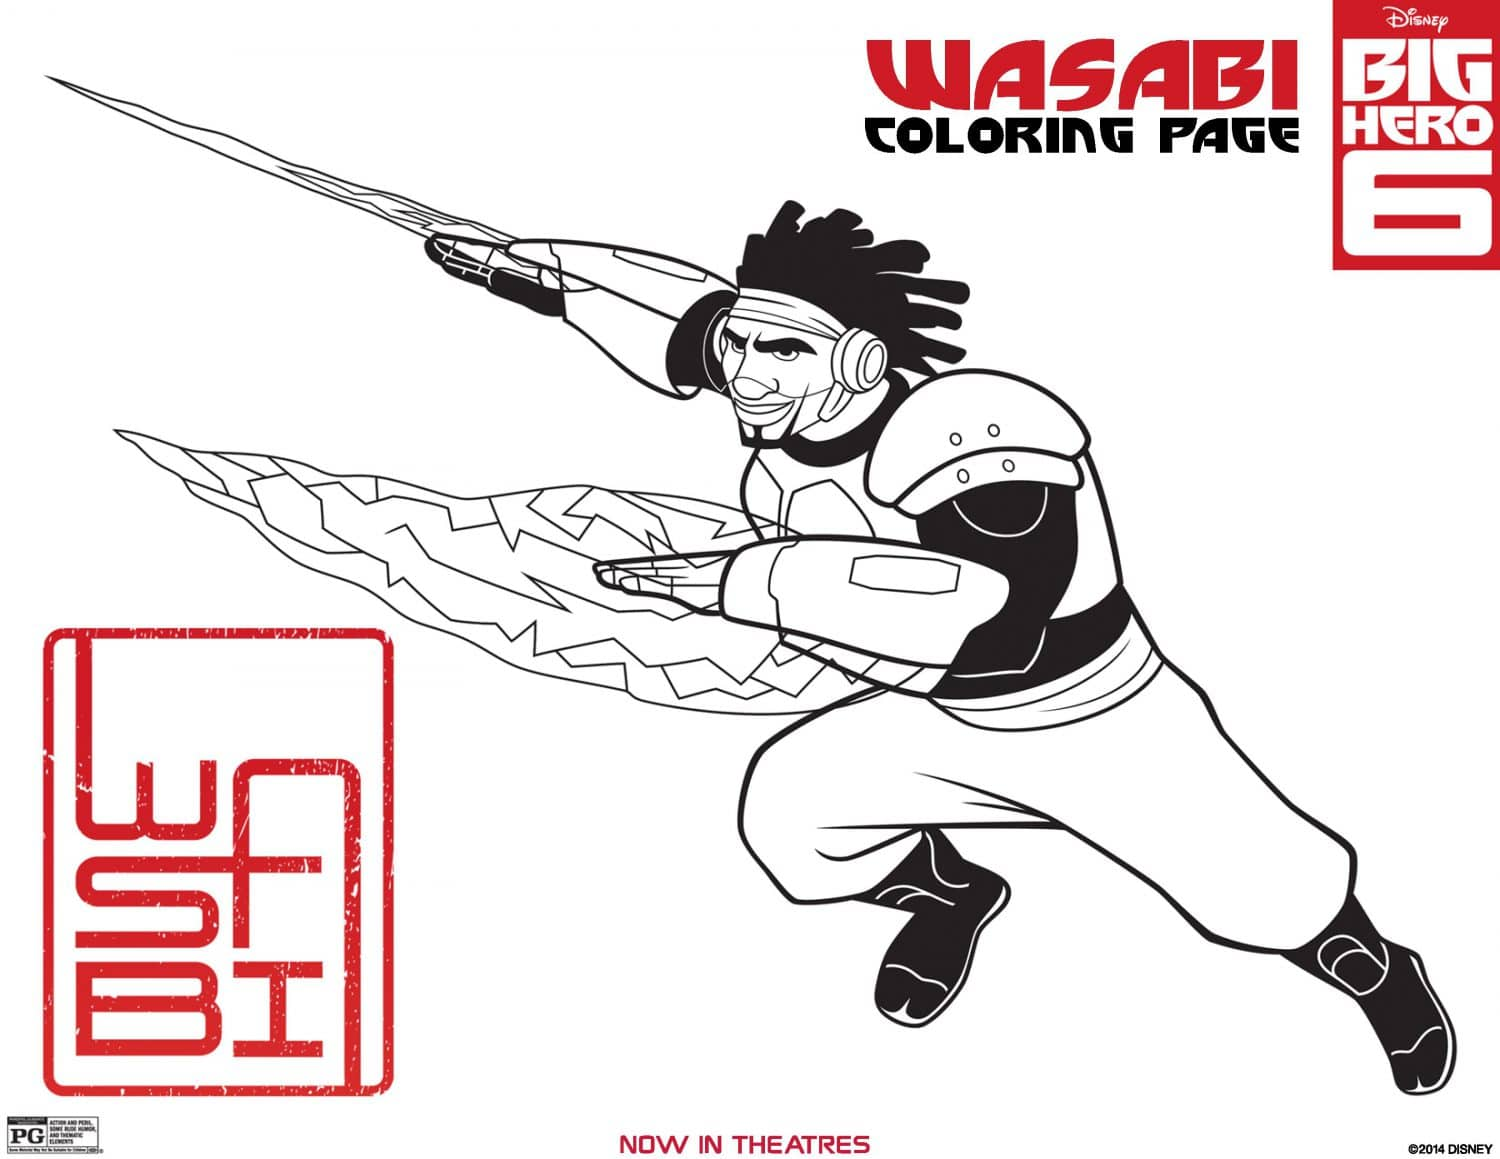 Big Hero 6 Coloring Page Wasabi